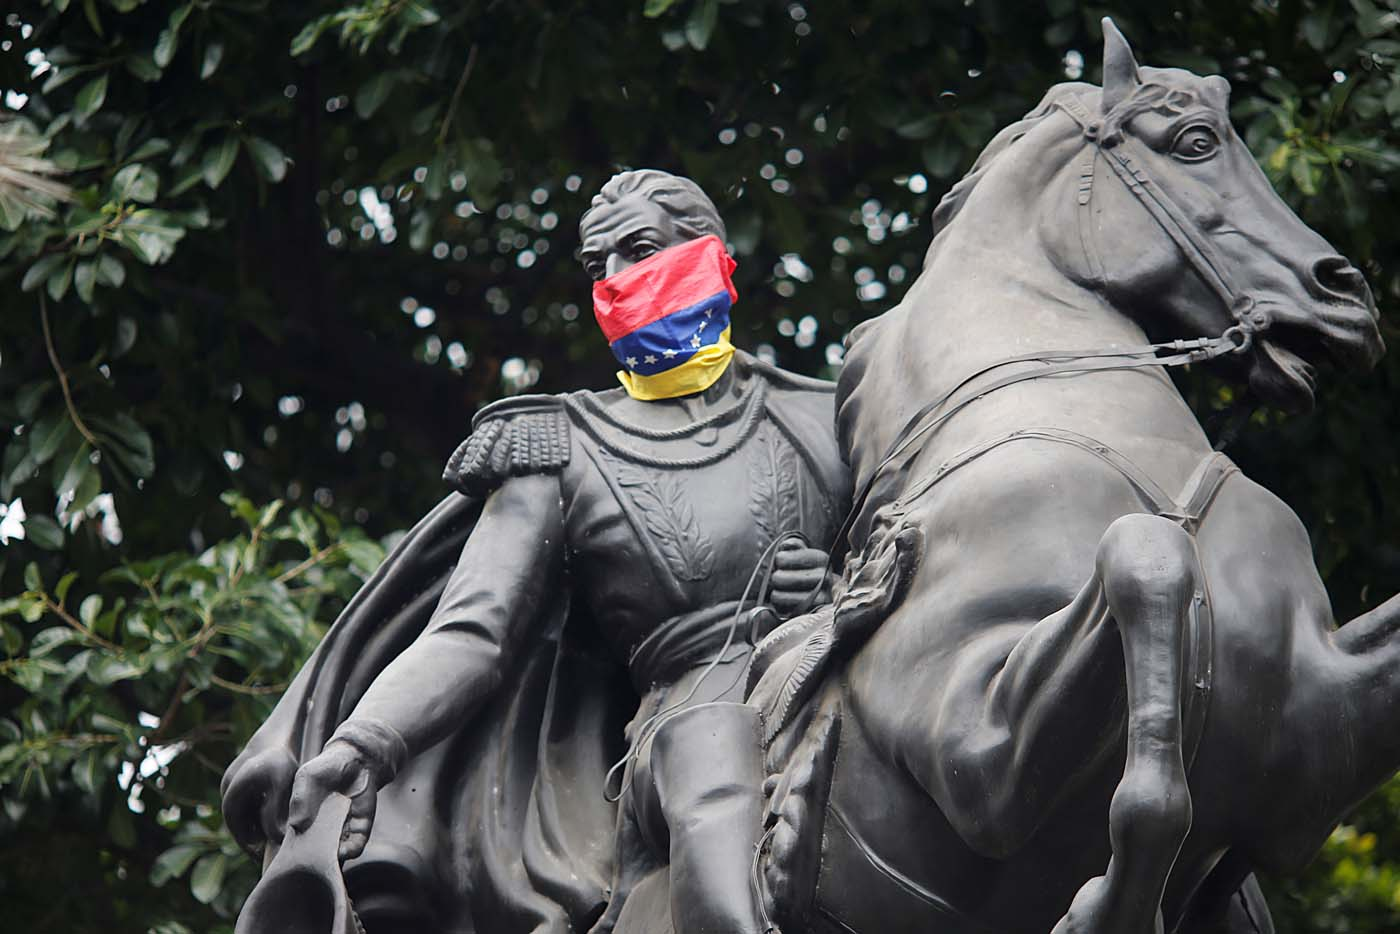 A Venezuelan flag is tied around the face of a statue of Venezuela's national hero Simon Bolivar in Bolivar Square of Chacao municipality in Caracas, Venezuela, August 5, 2017. REUTERS/Andres Martinez Casares